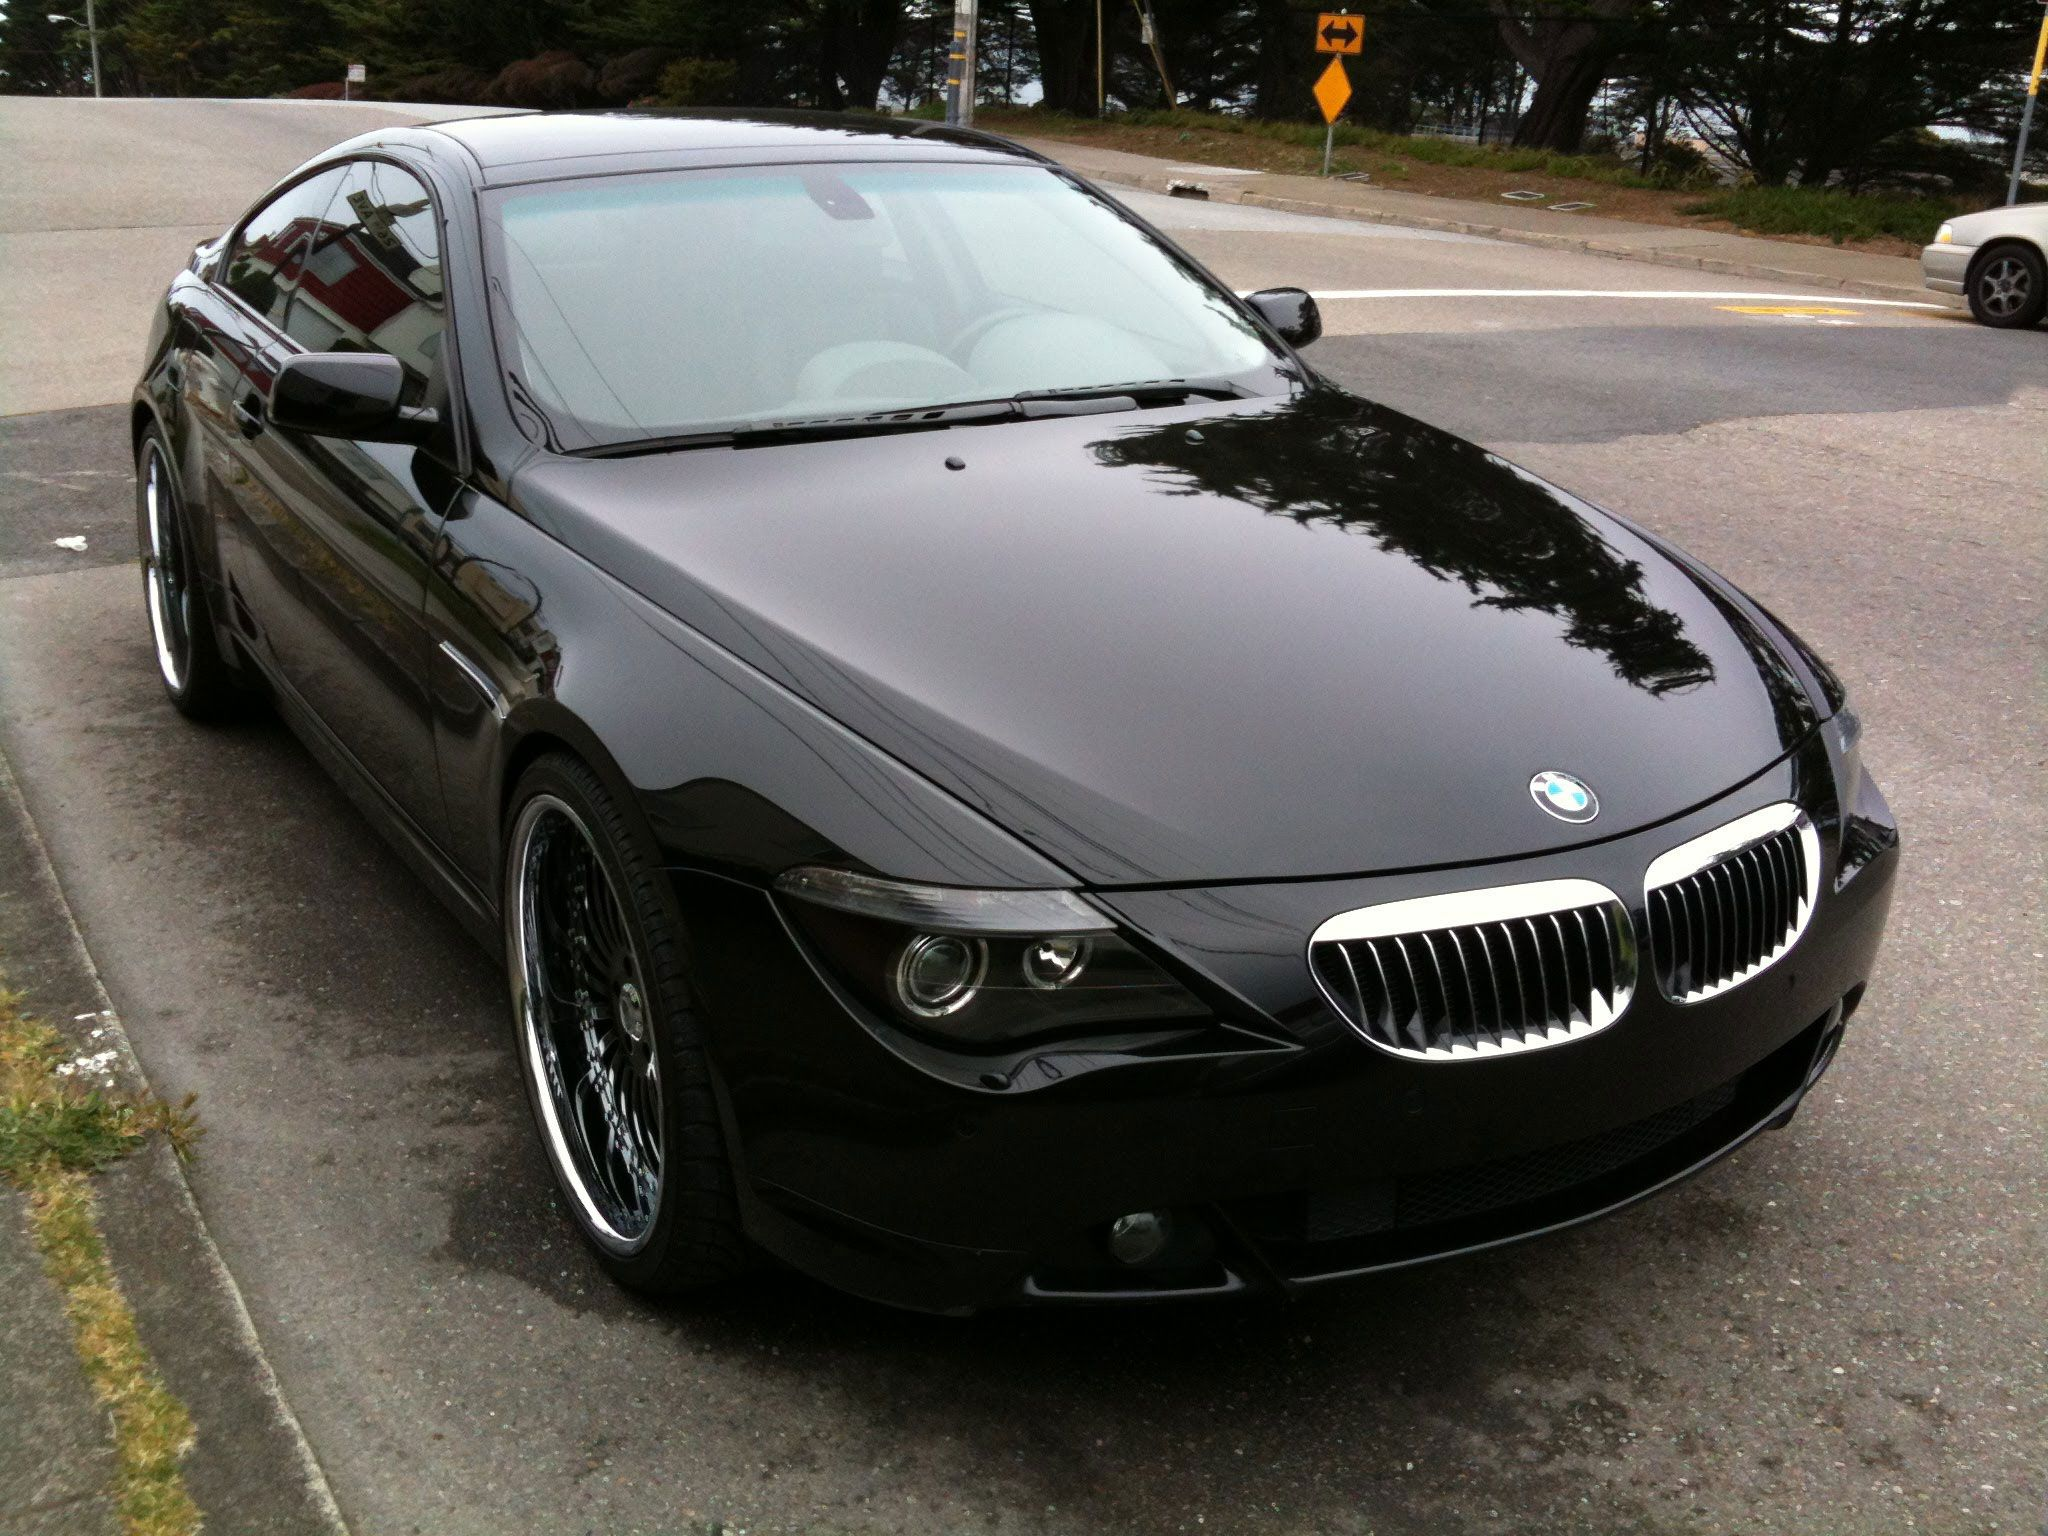 The BMW Ci Is Luxurious Spacious And Delights The Eyes BMW - Bmw 645ci engine